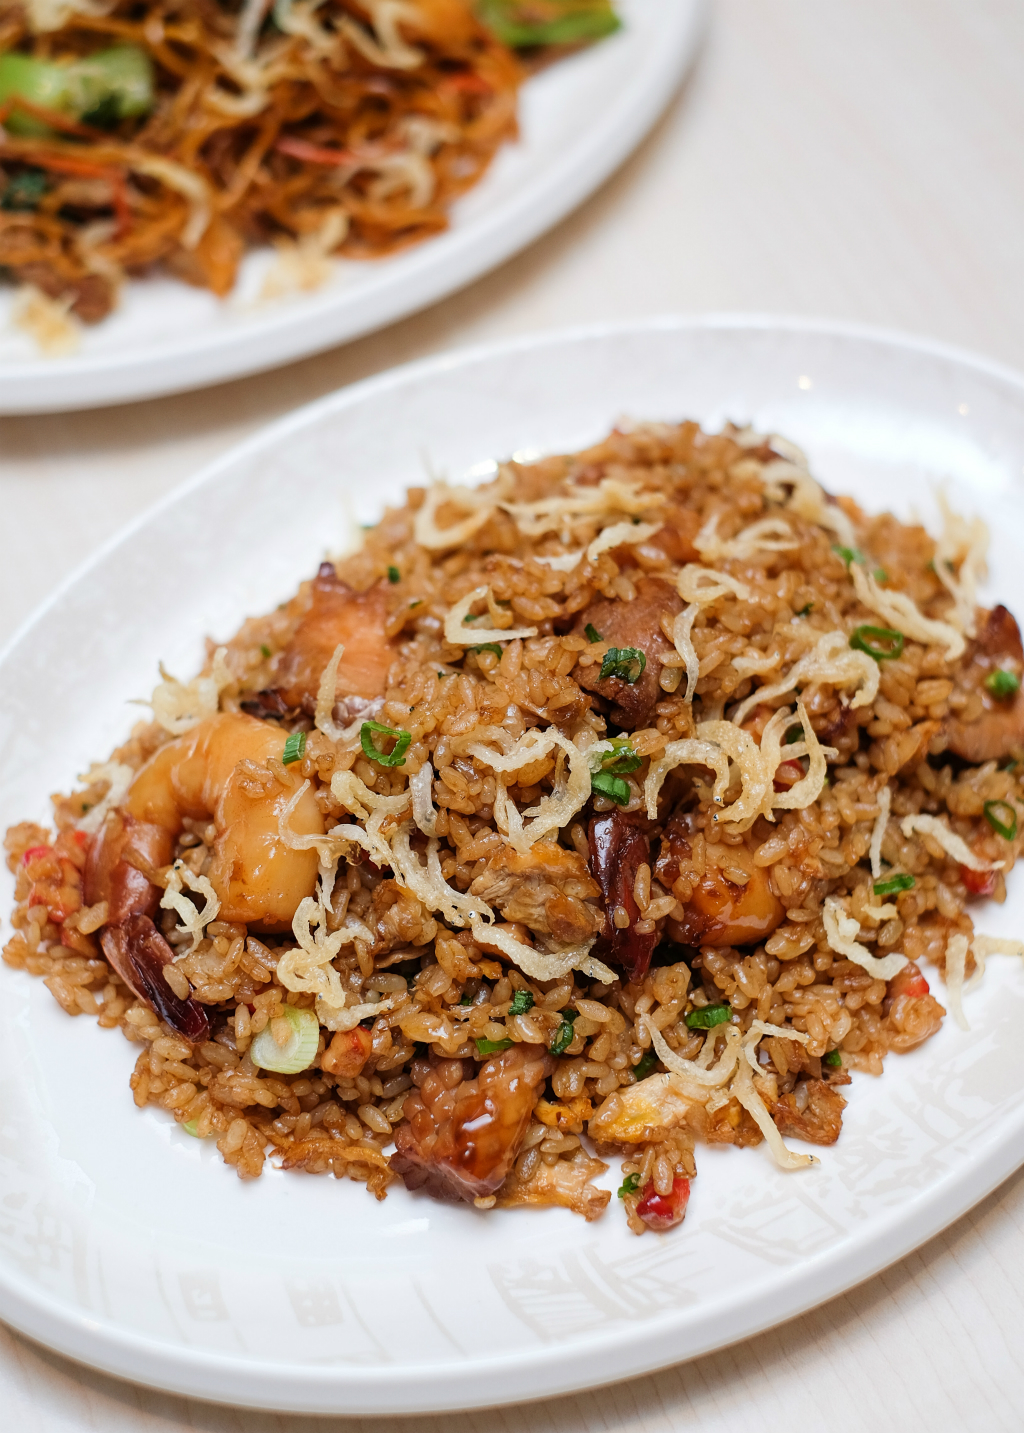 Xin Wang Hong Kong Café: XW Signature Fried Rice